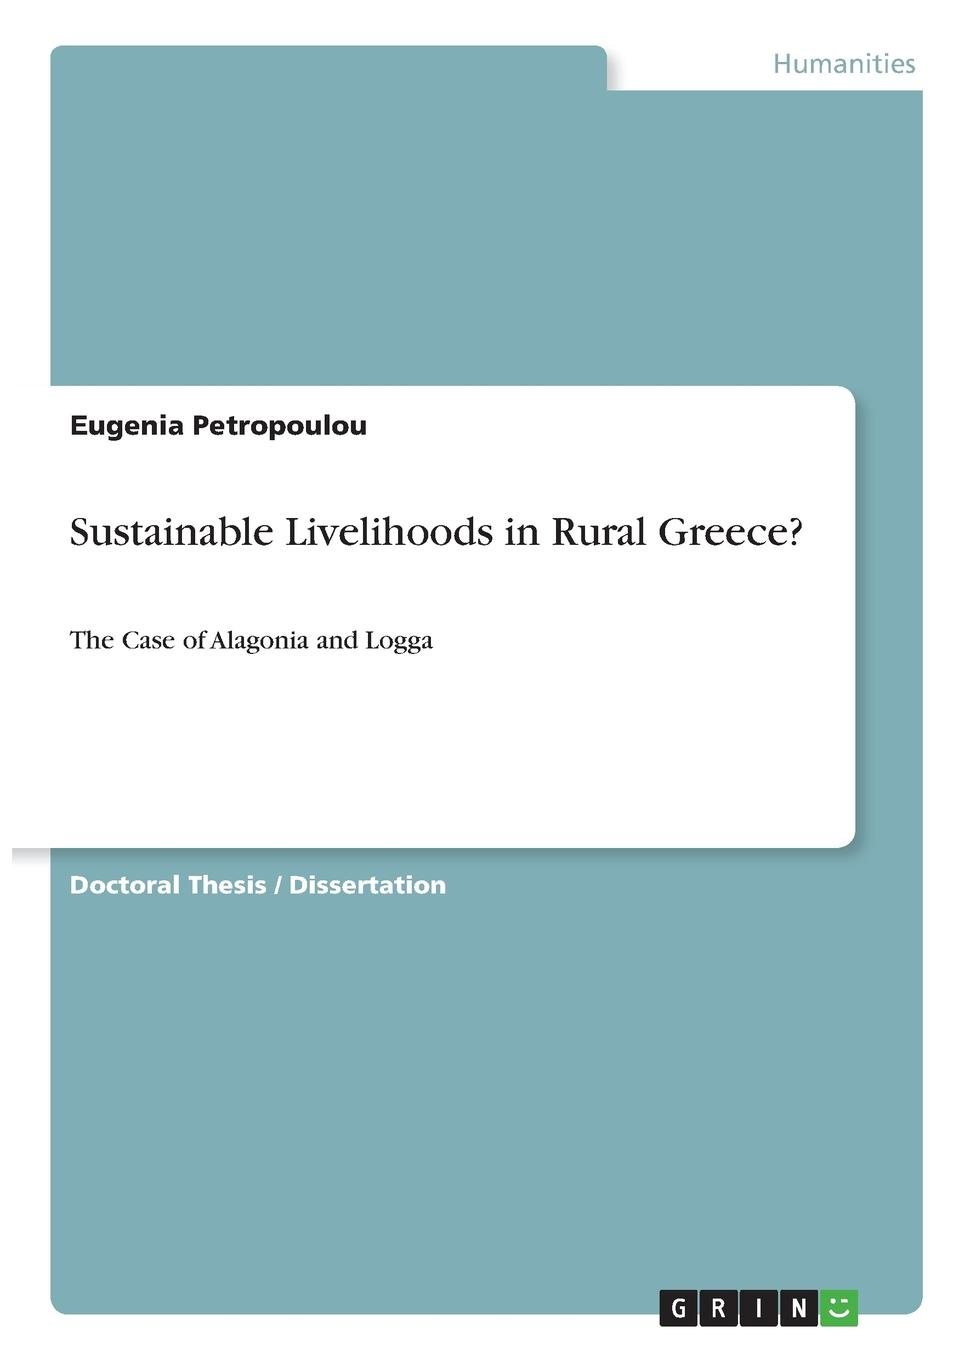 Εugenia Petropoulou Sustainable Livelihoods in Rural Greece.